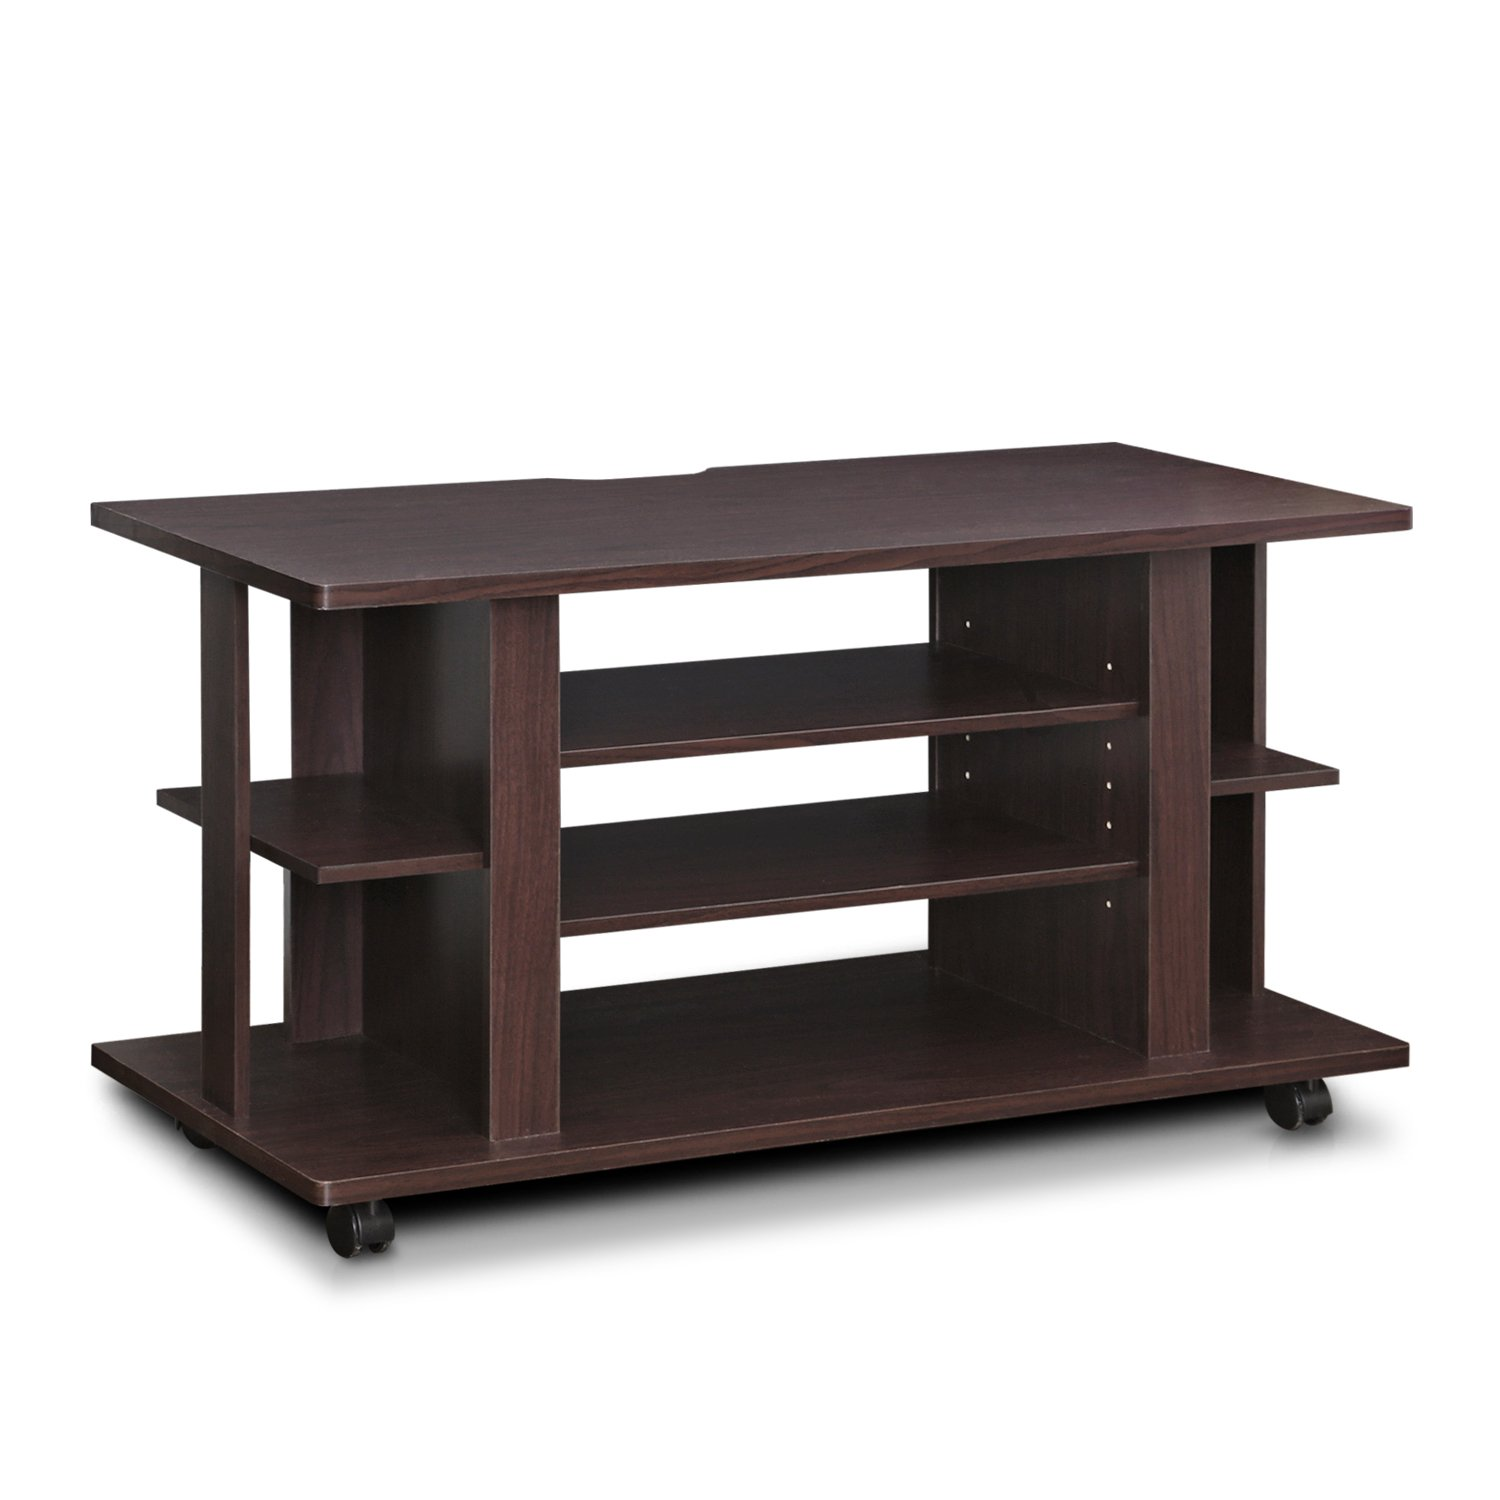 Furinno Indo 4-Tier Low Rise Tatami TV Stands with Casters, Espresso